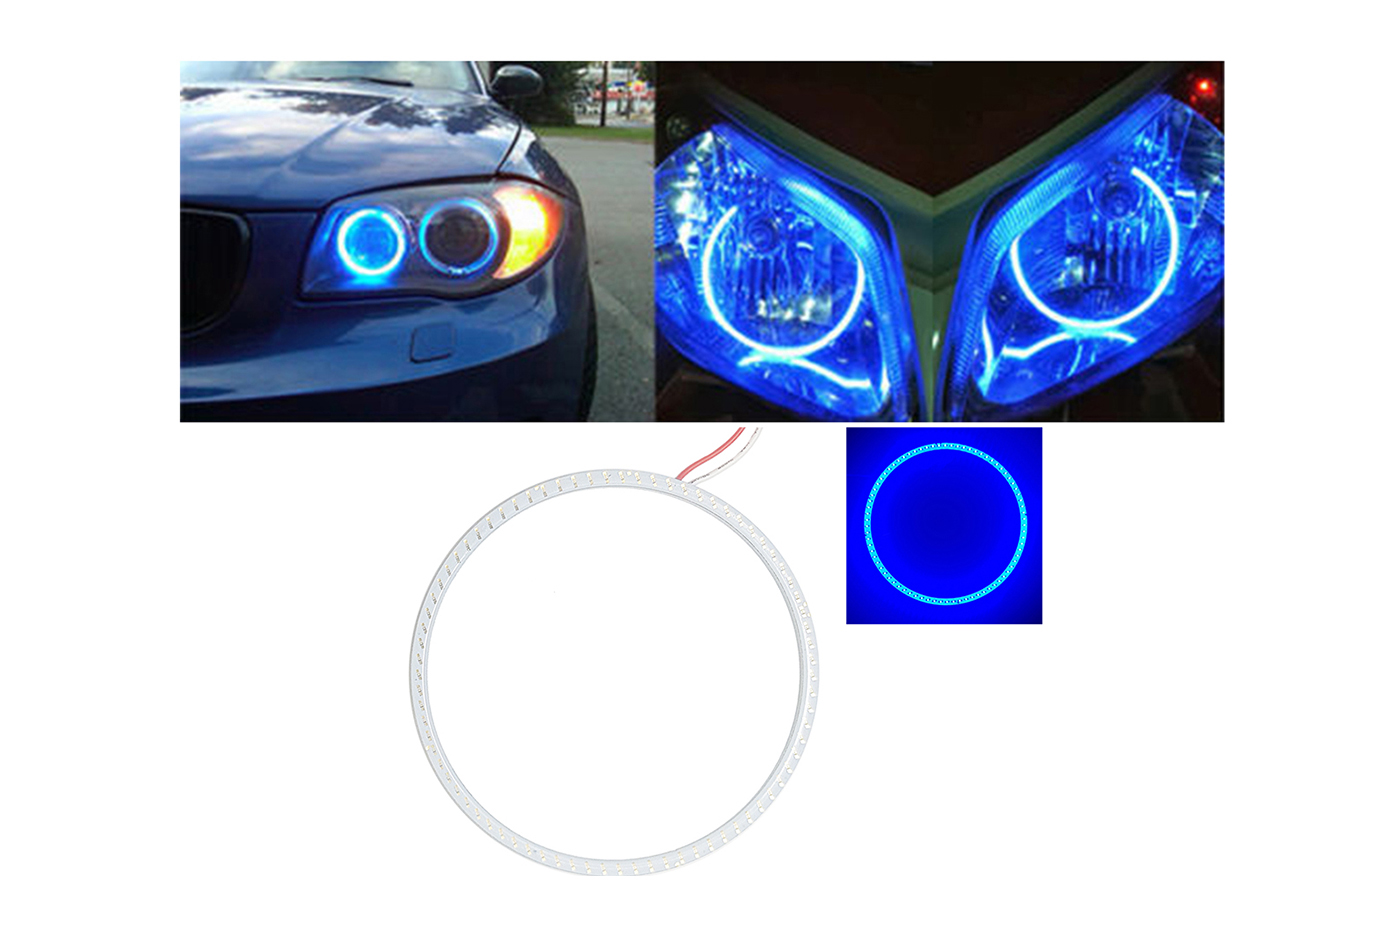 Angel eyes led cerchio luminoso colore blu anello luce auto moto 110MM GQ-1110